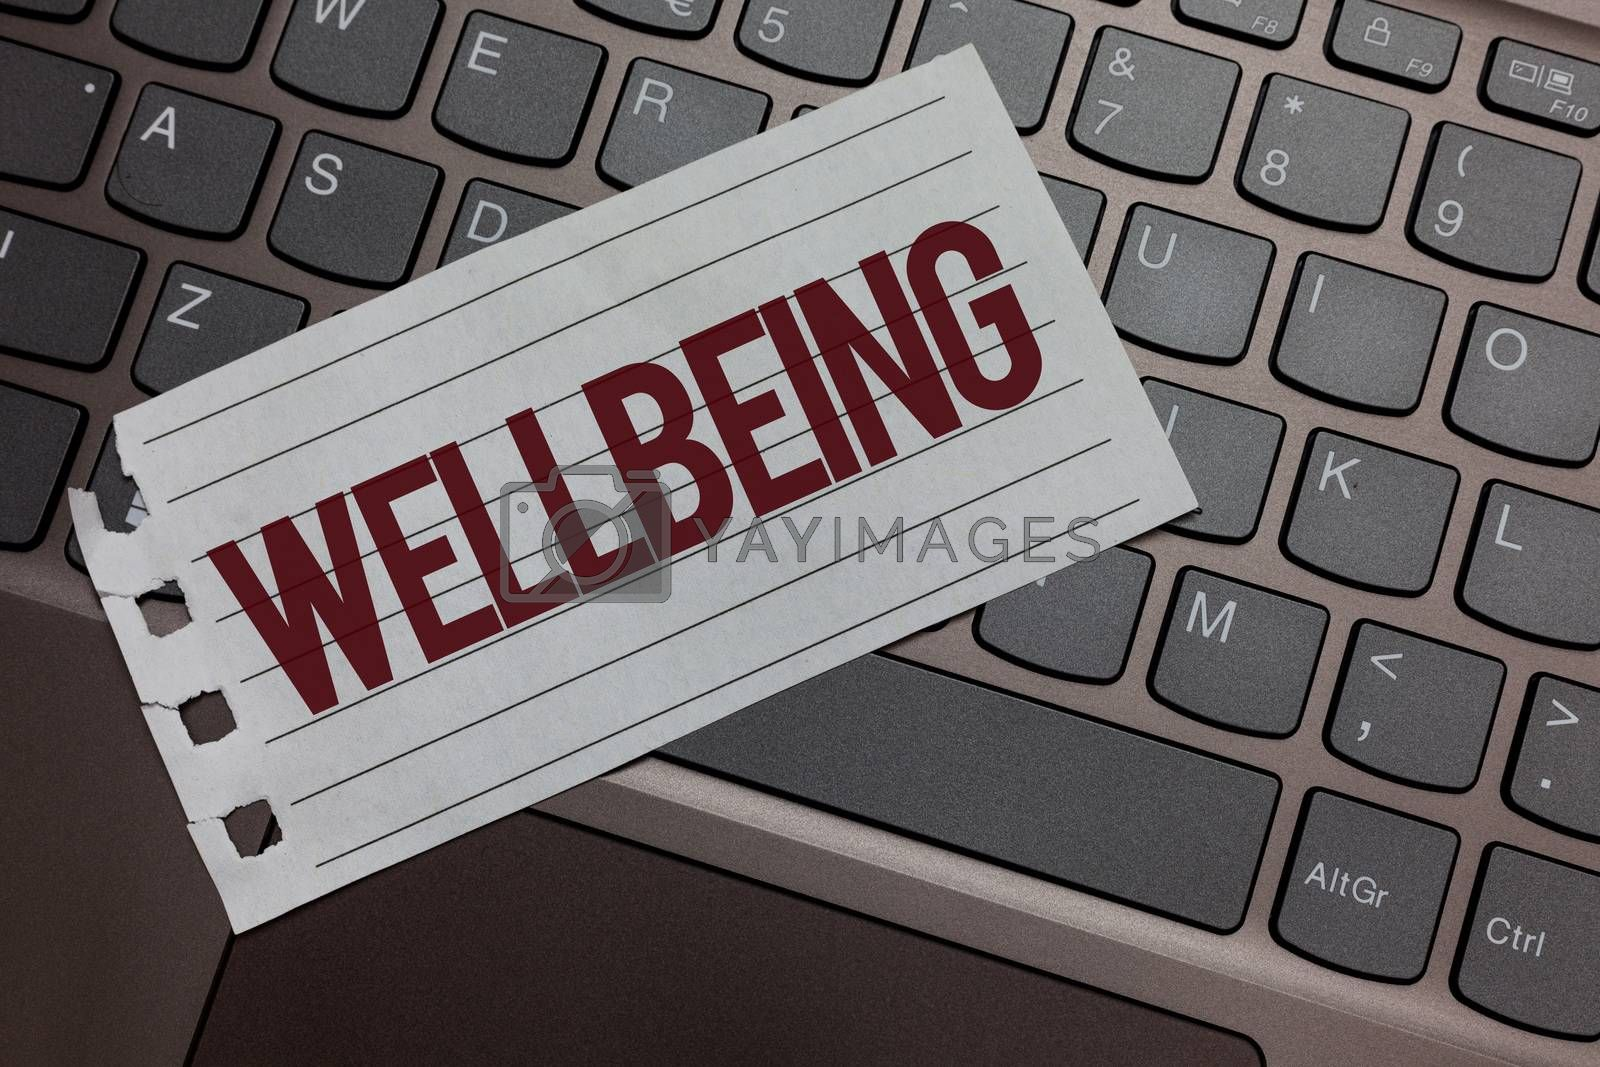 Writing note showing Wellbeing. Business photo showcasing Healthy lifestyle conditions of people life work balance Keyboard colour grey paper keys laptop creative idea computer keypad